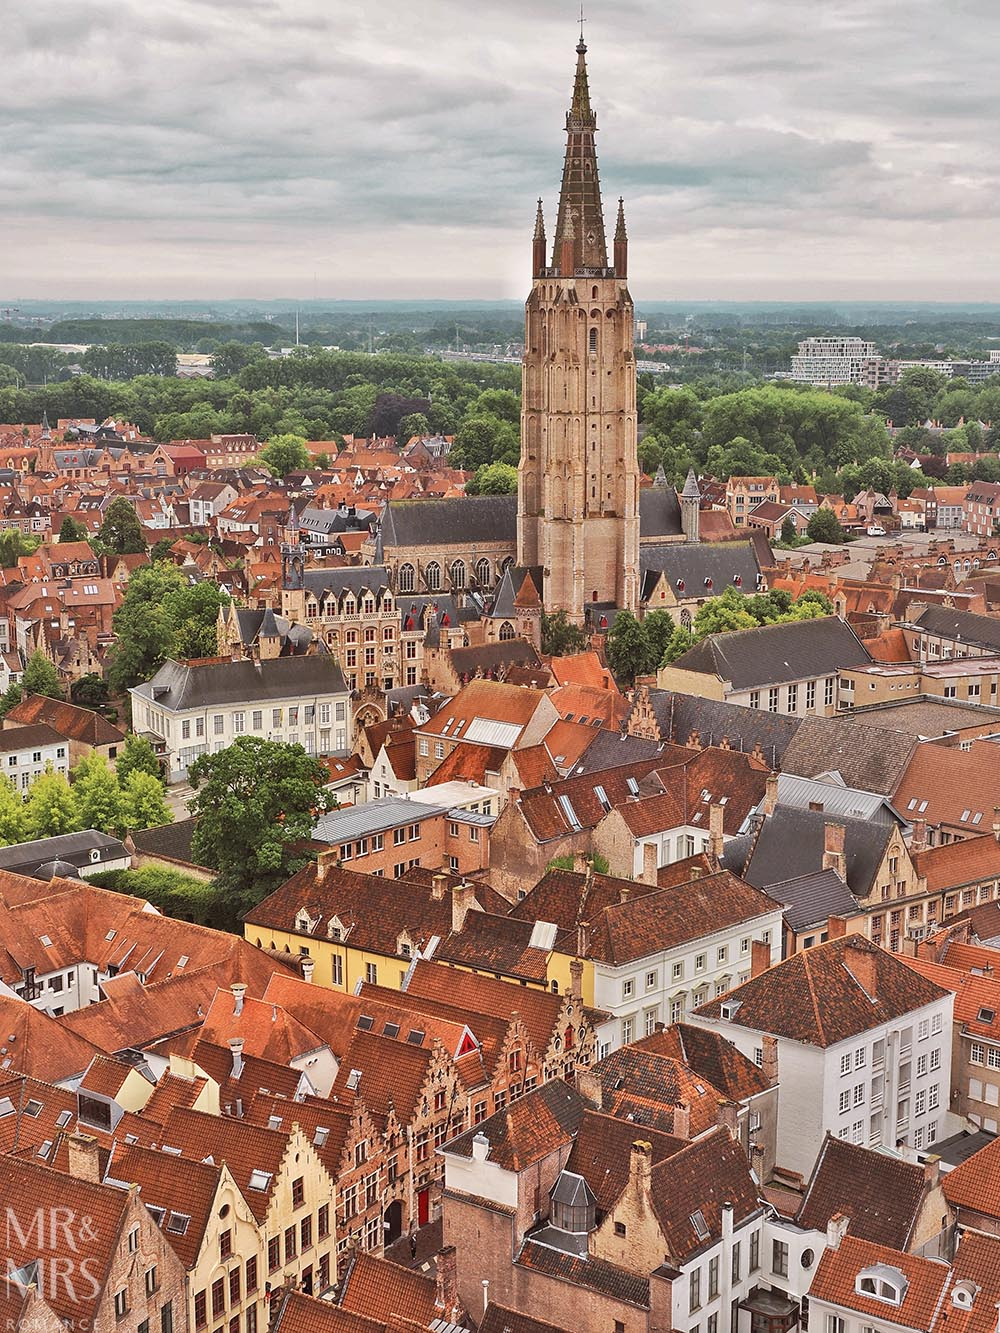 Postcards from Bruges, Belgium - view of city from the Belfry